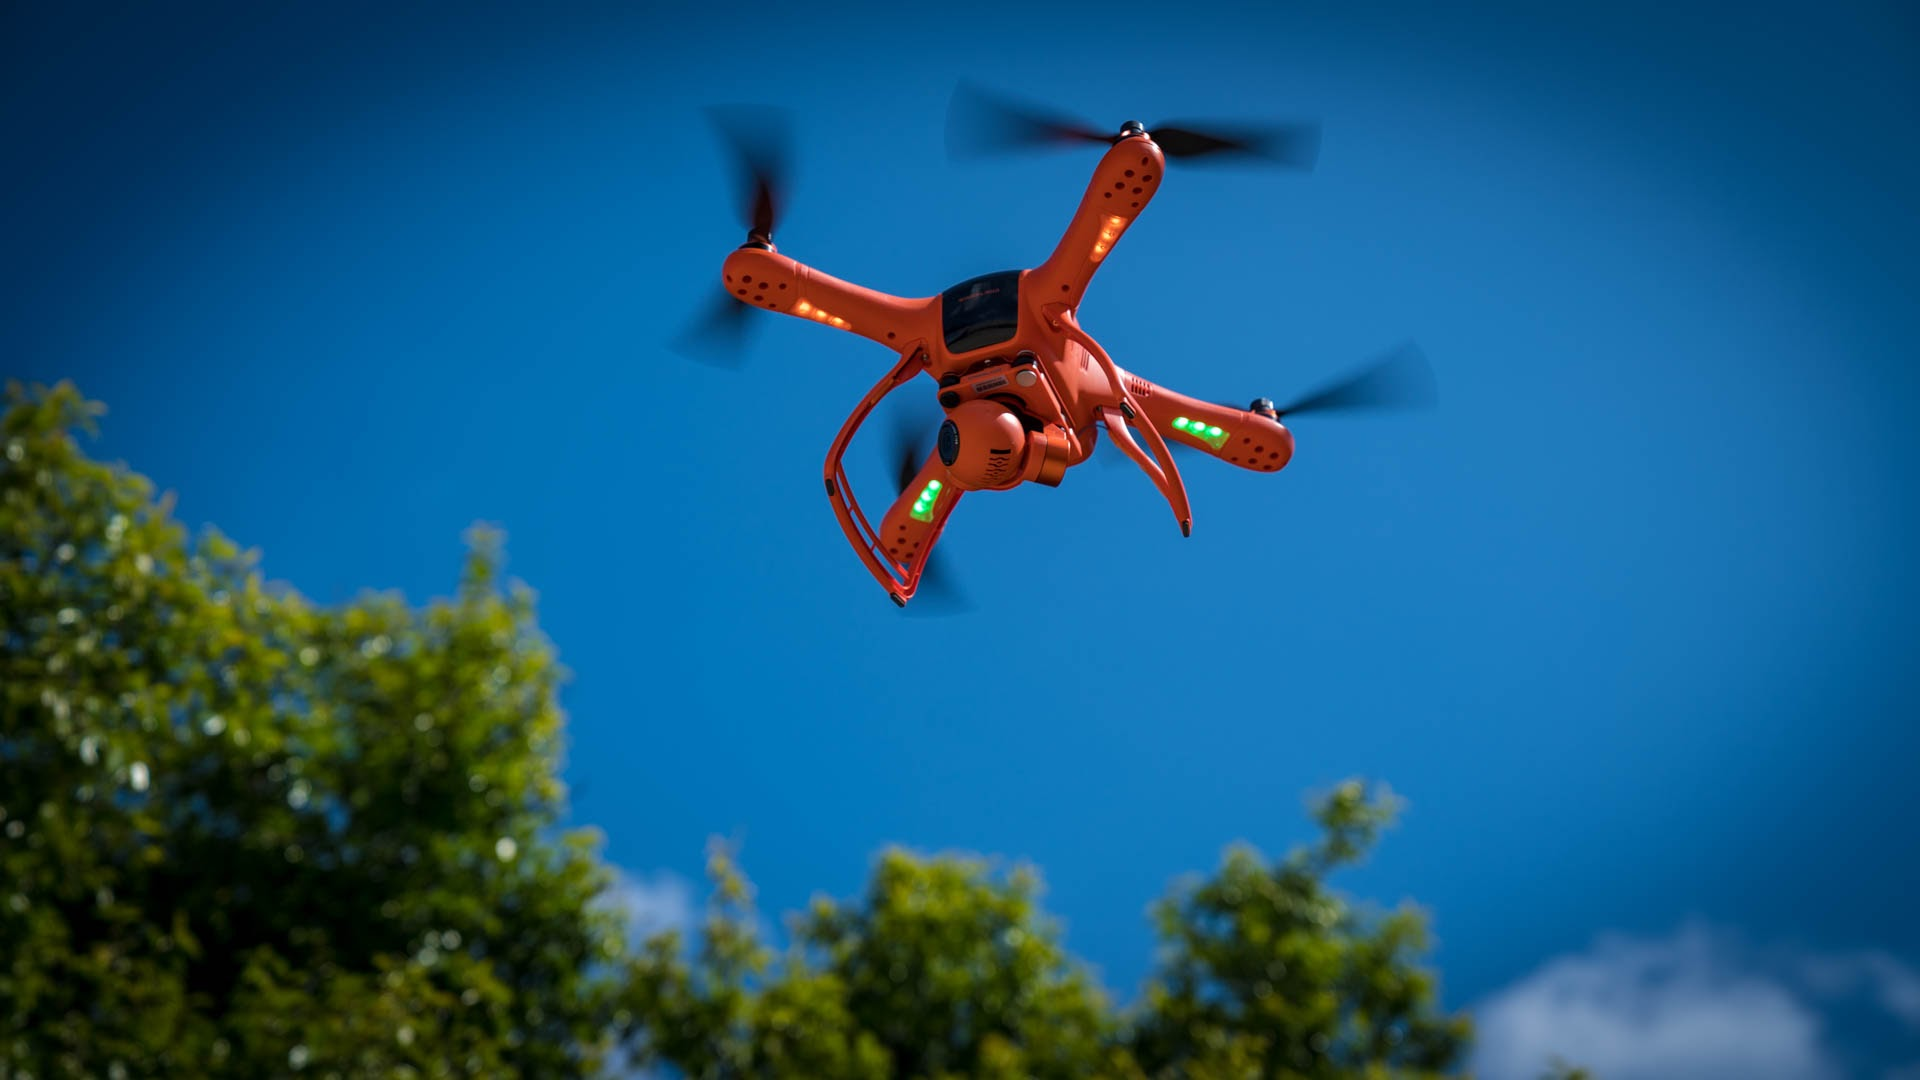 Wingsland Minivet: A Beginner's Step into Photography Drones